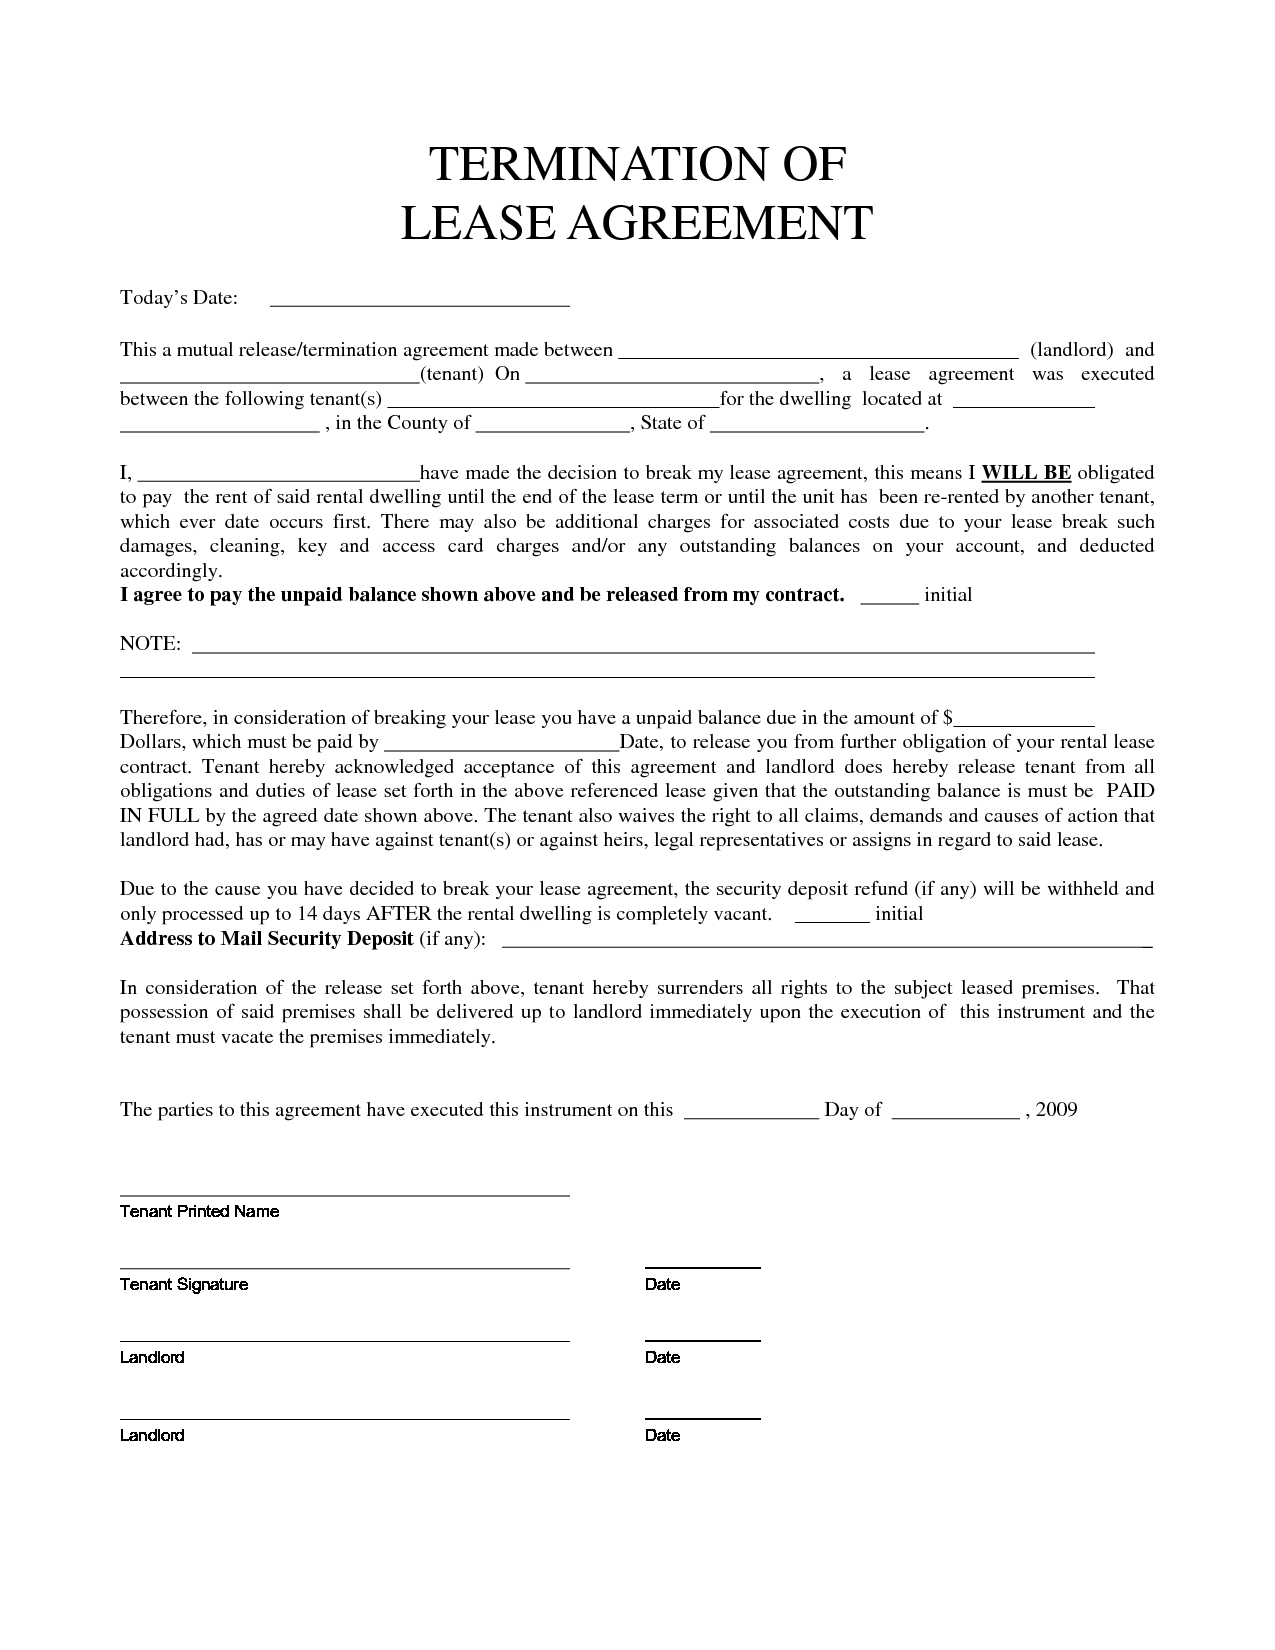 Personal Property Rental Agreement Forms  Property Rentals Direct Within Surrender Of Lease Agreement Template